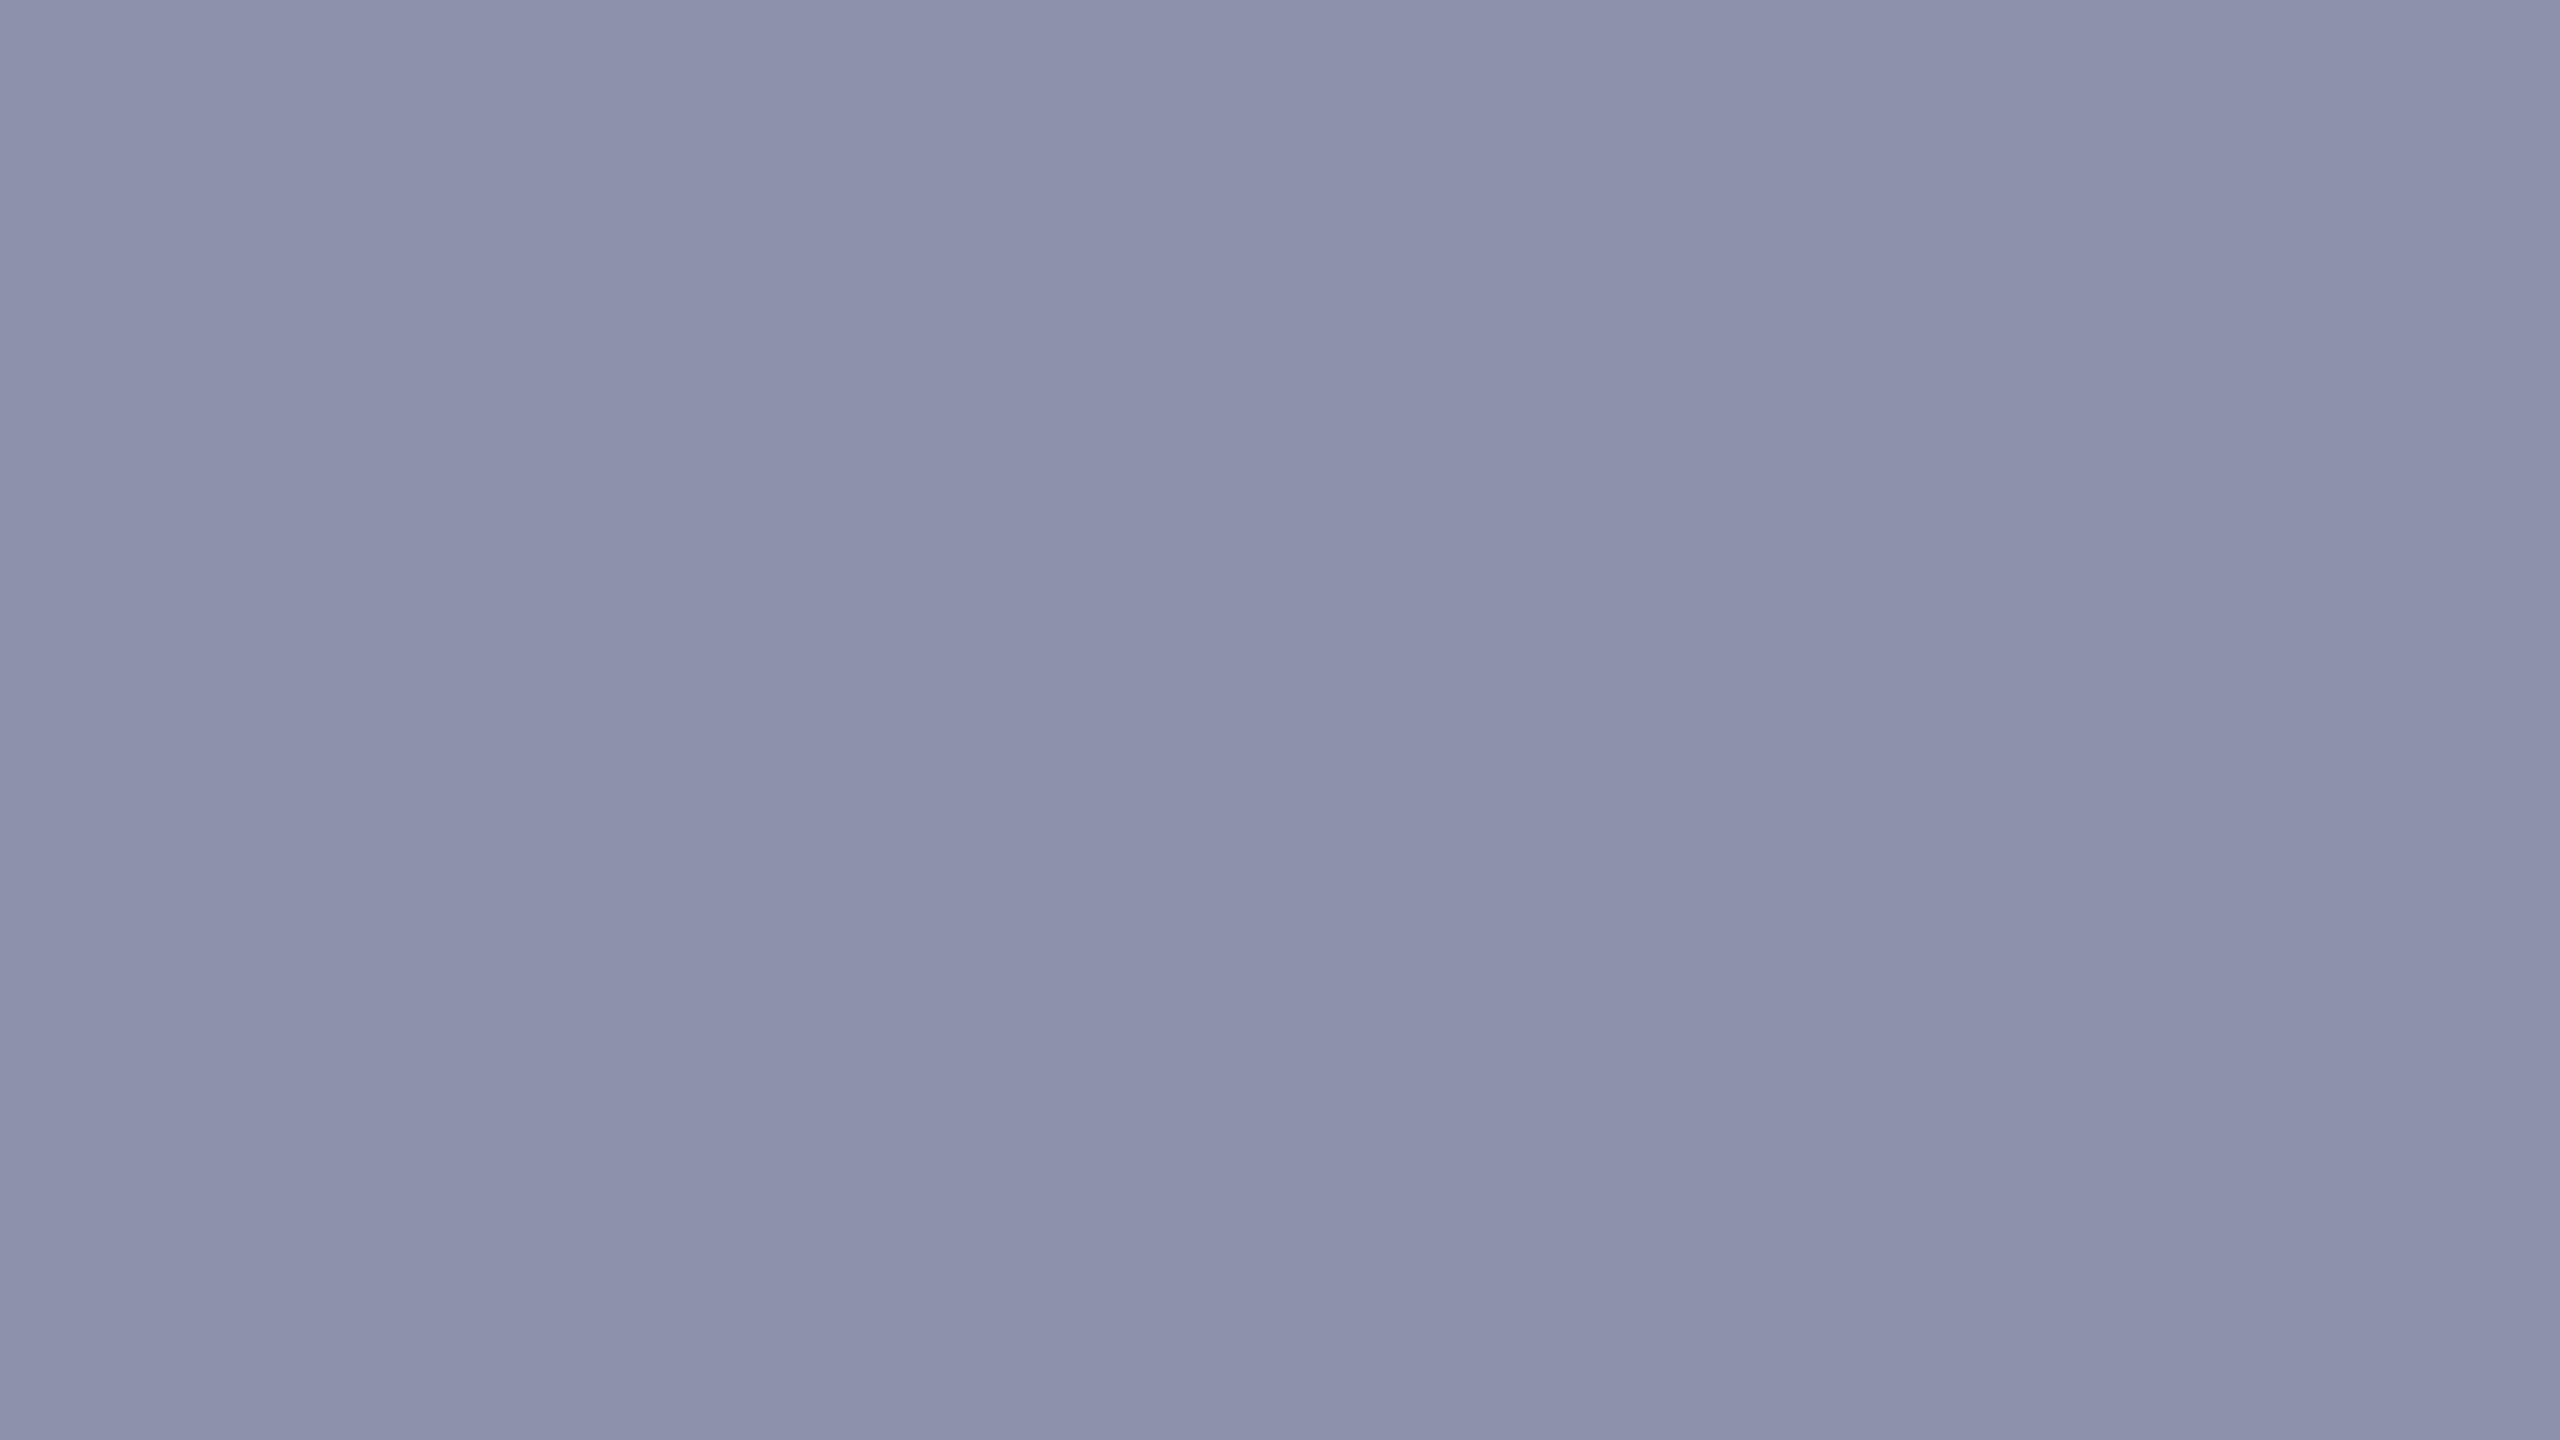 2560x1440 Cool Grey Solid Color Background